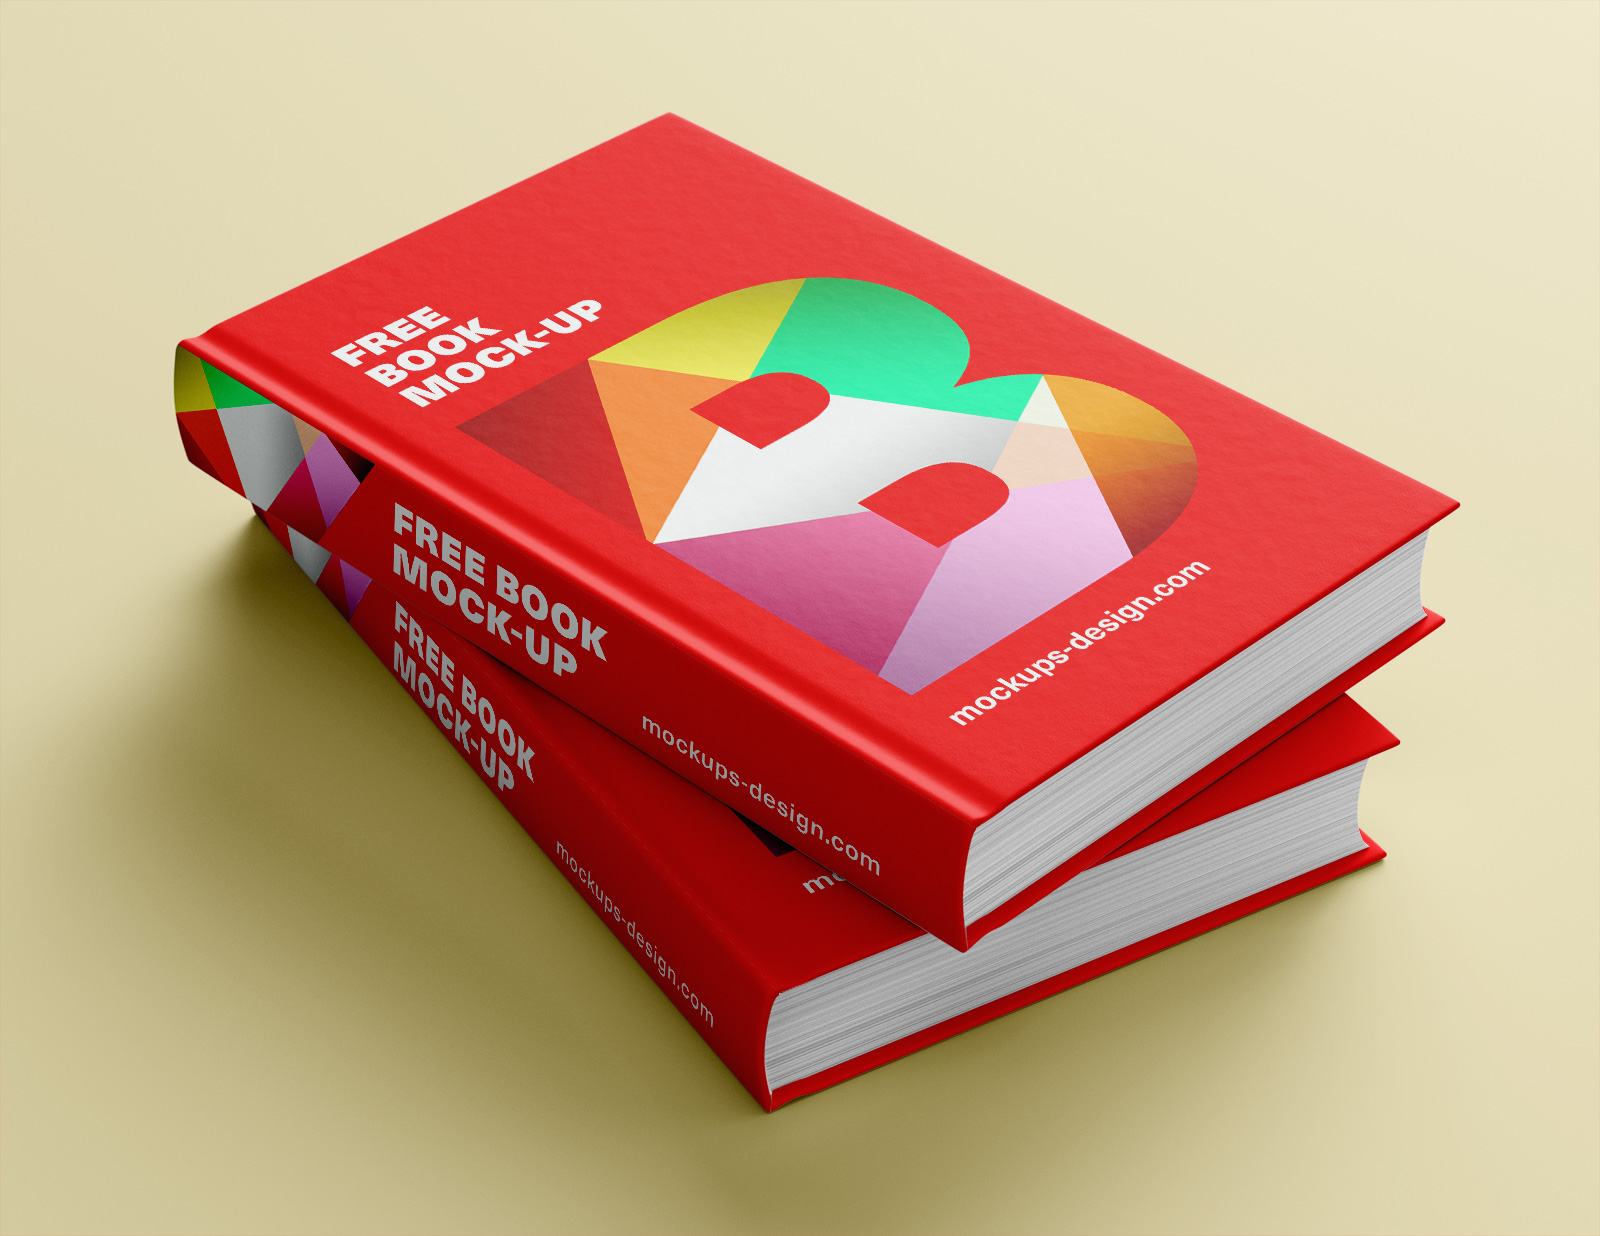 Free-Hardcover-Book-Title-Cover-Mockup-PSD-File